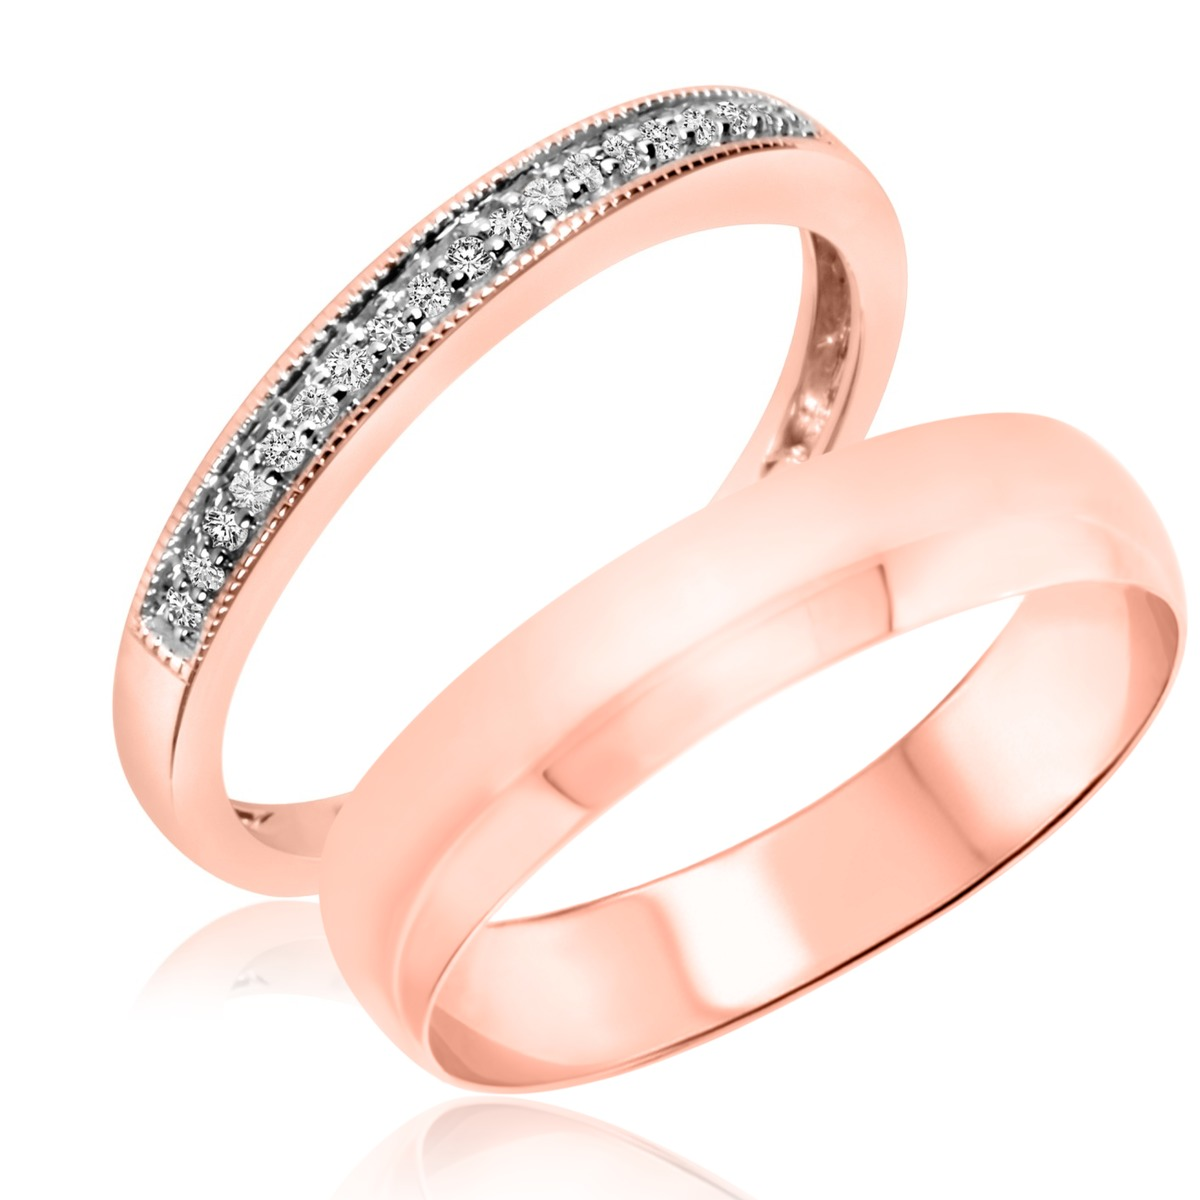 1/10 Carat T.W. Round Cut Diamond His and Hers Wedding Band Set 10K Rose Gold